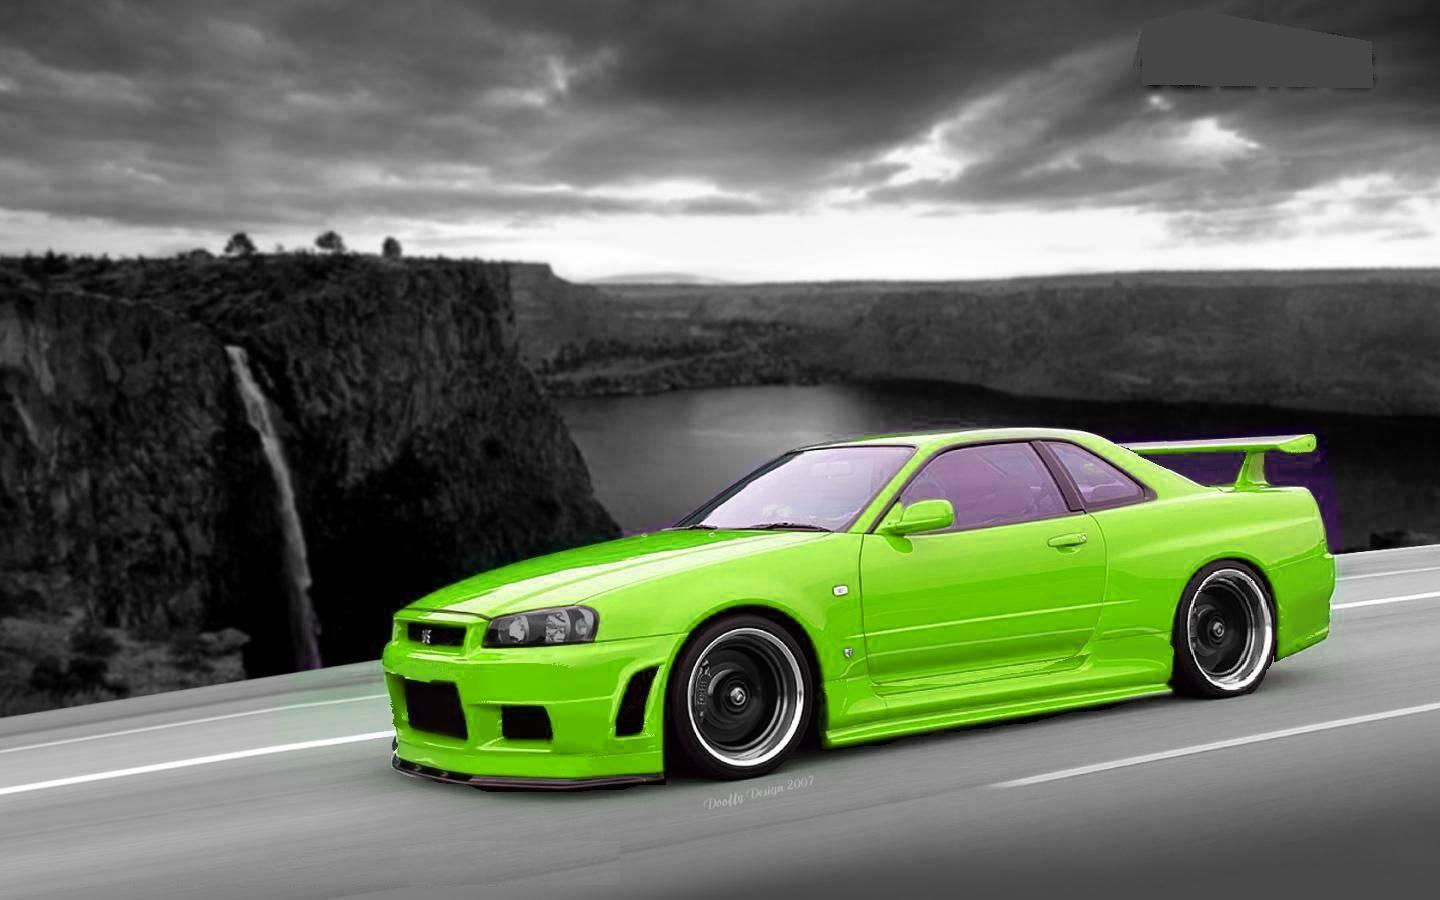 Nissan Skyline R34 Wallpapers Wallpaper Cave